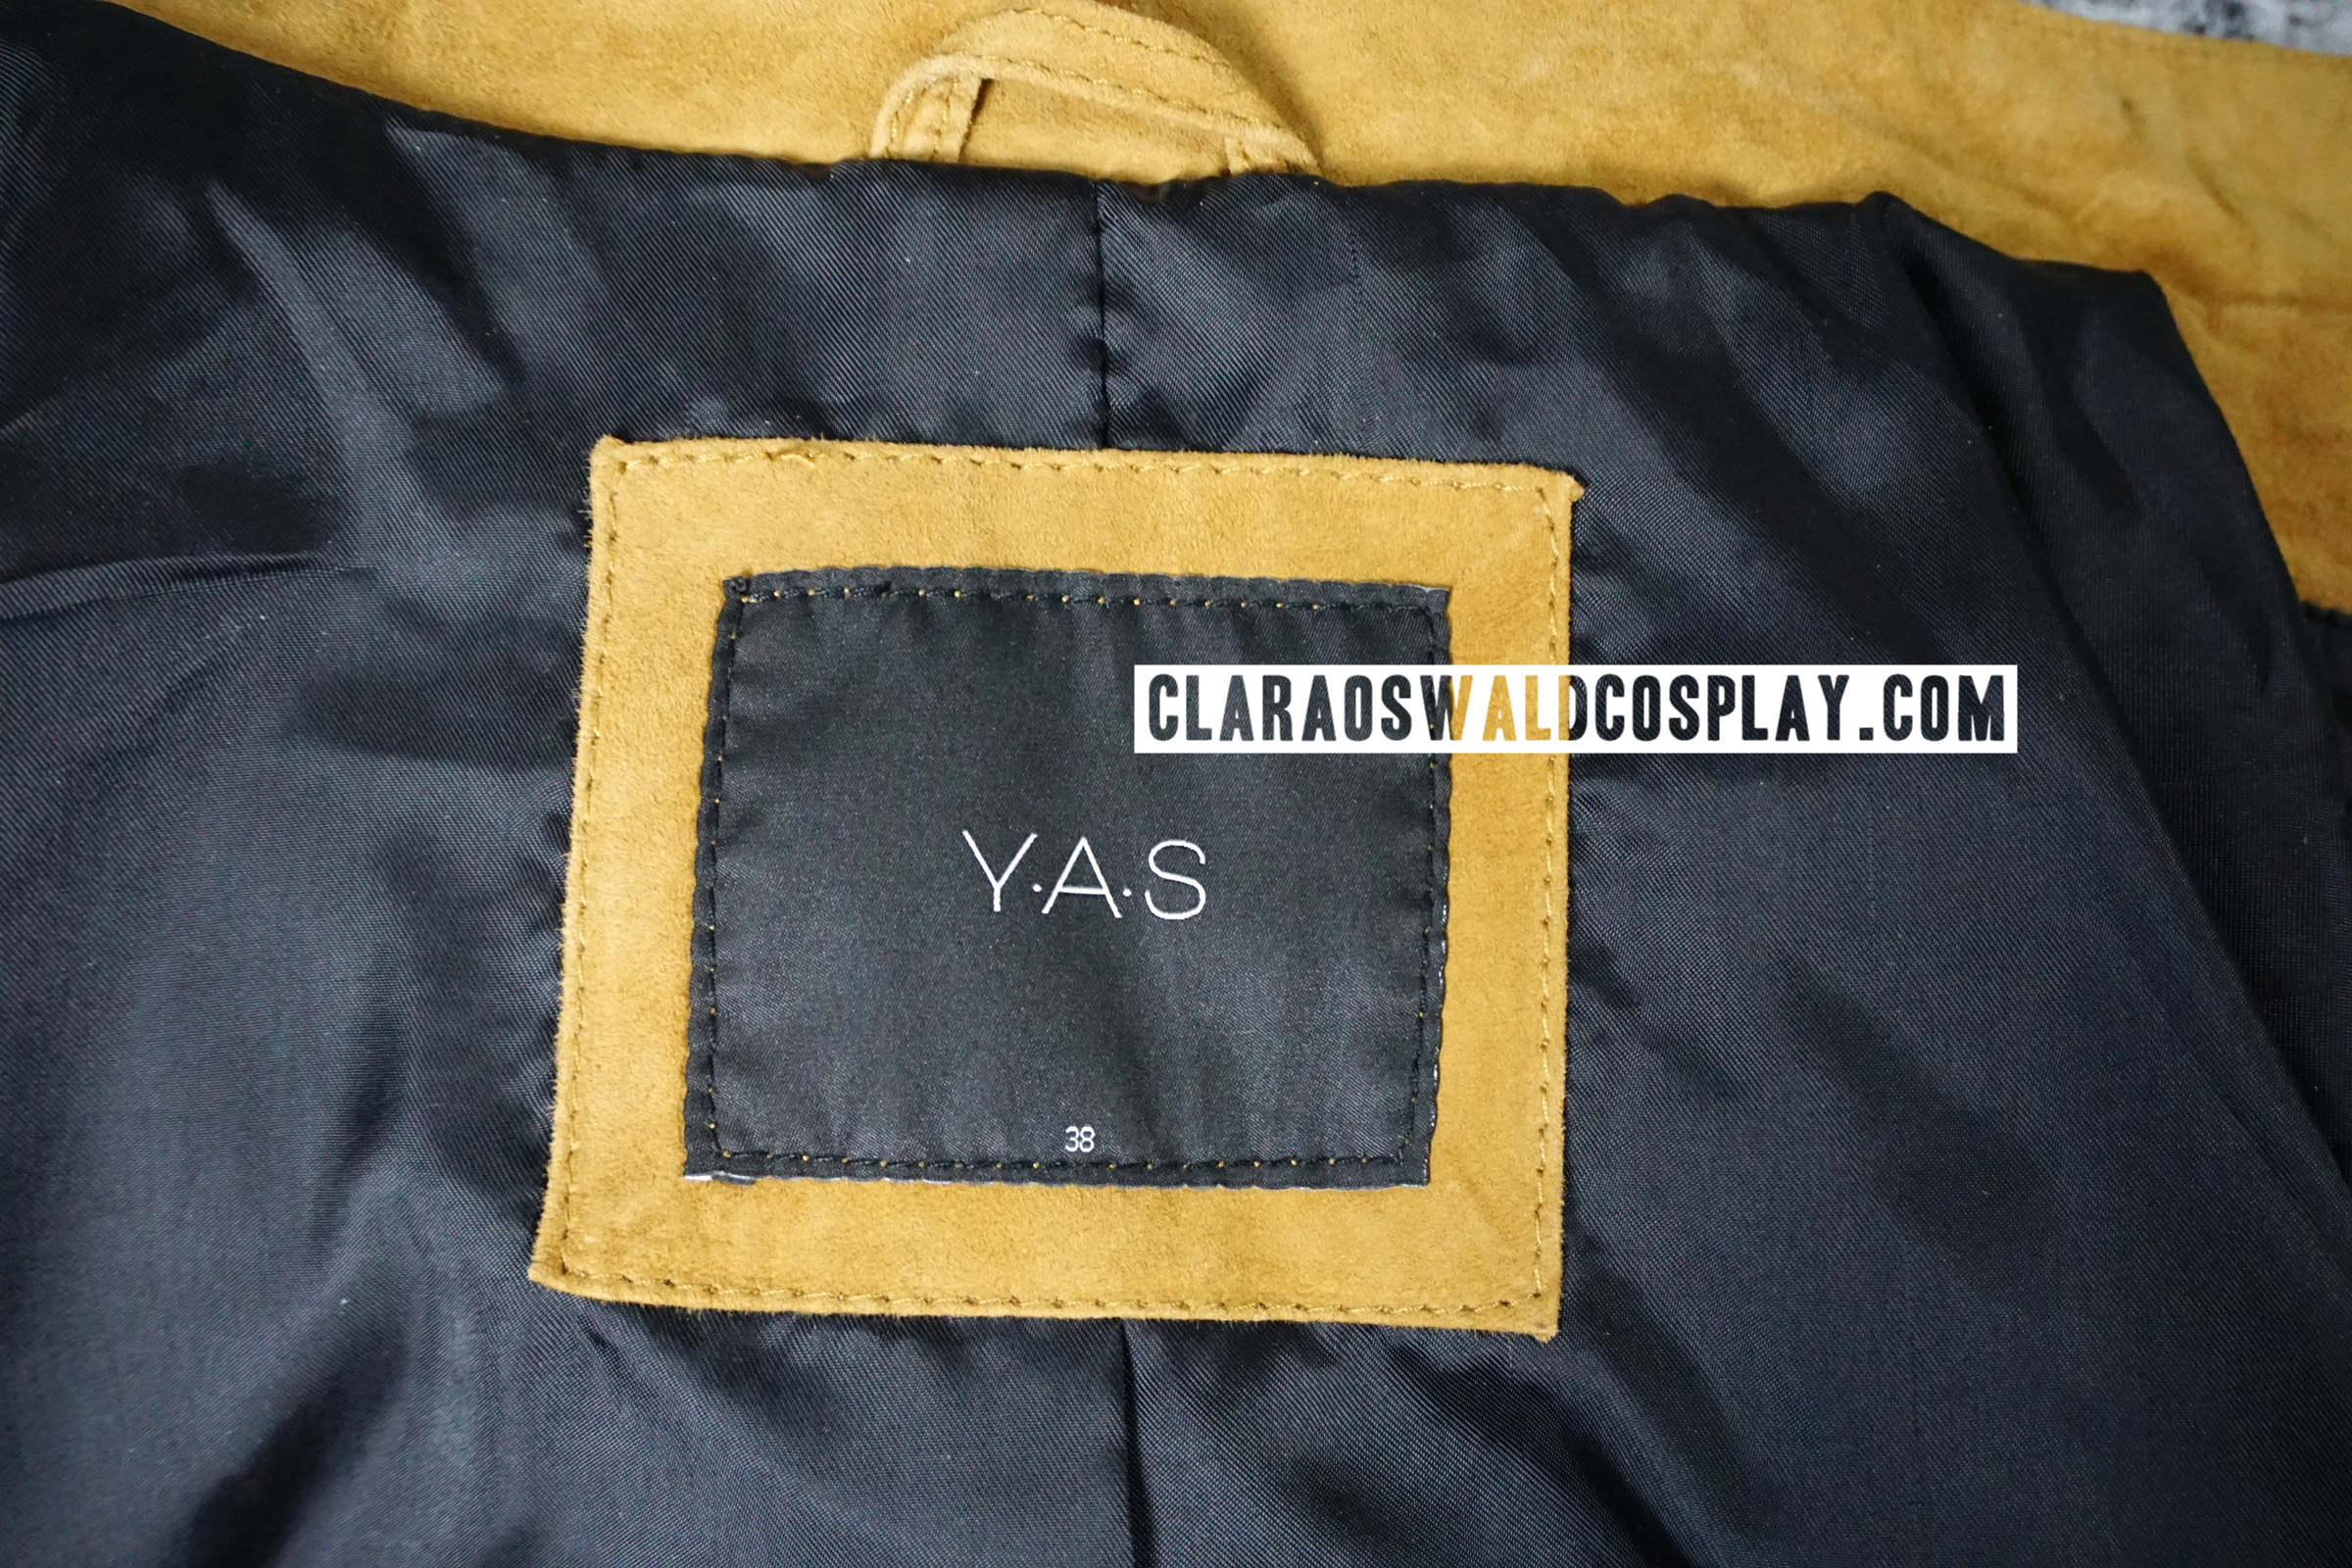 A closer look at the label which is also a way of telling whether you're looking at the SA jacket